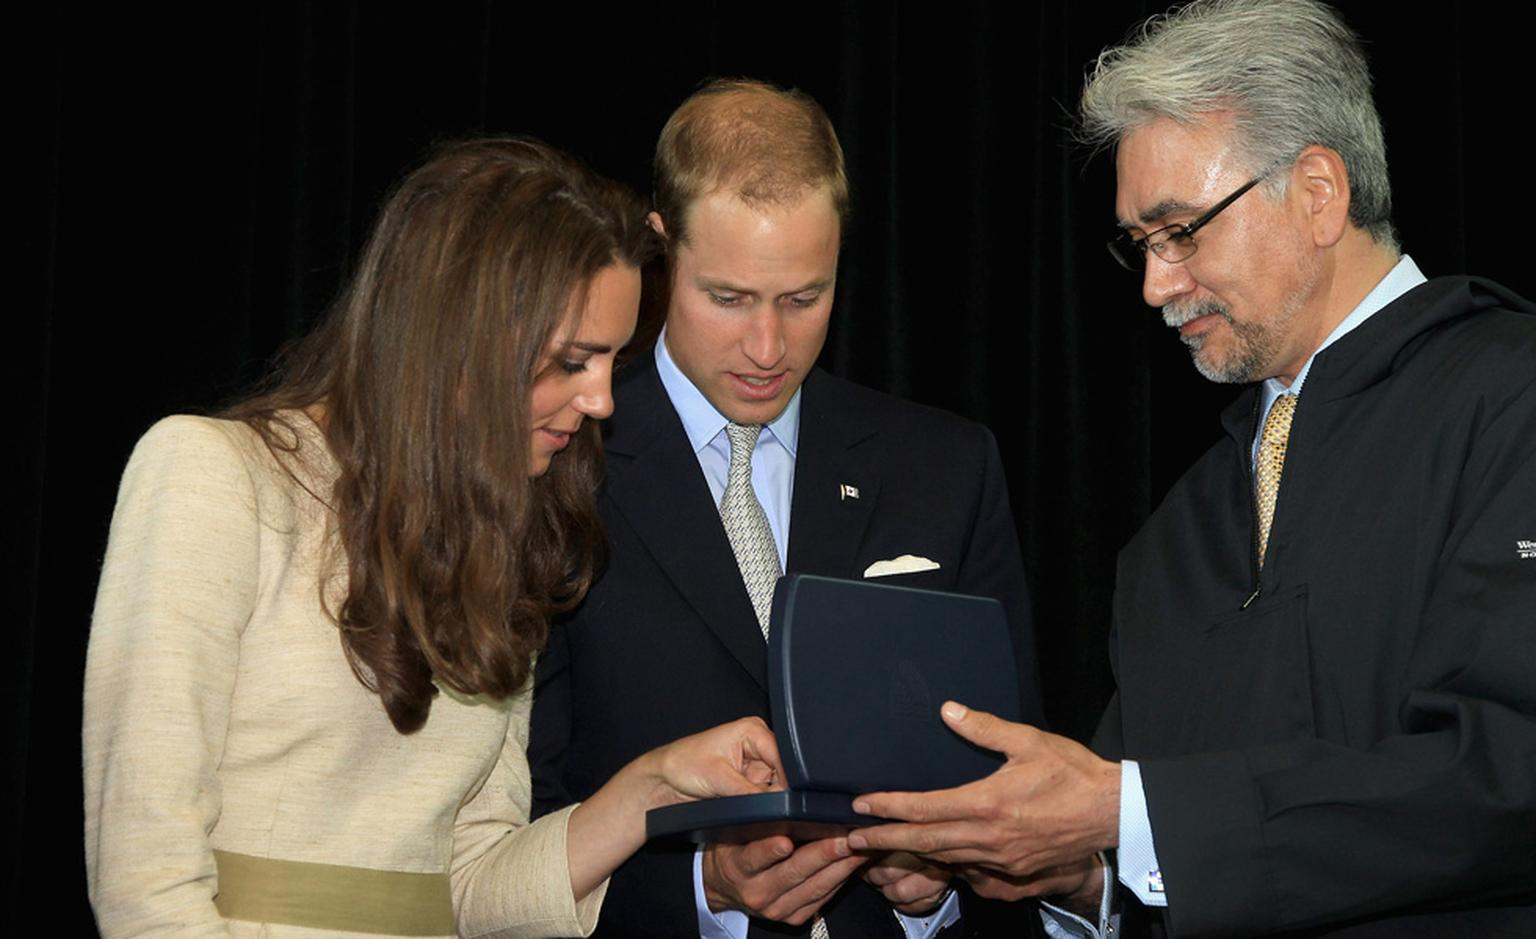 The Duke and Duchess of Cambridge are presented with diamond jewels by Northwest Territories Premier Floyd K Rowland.